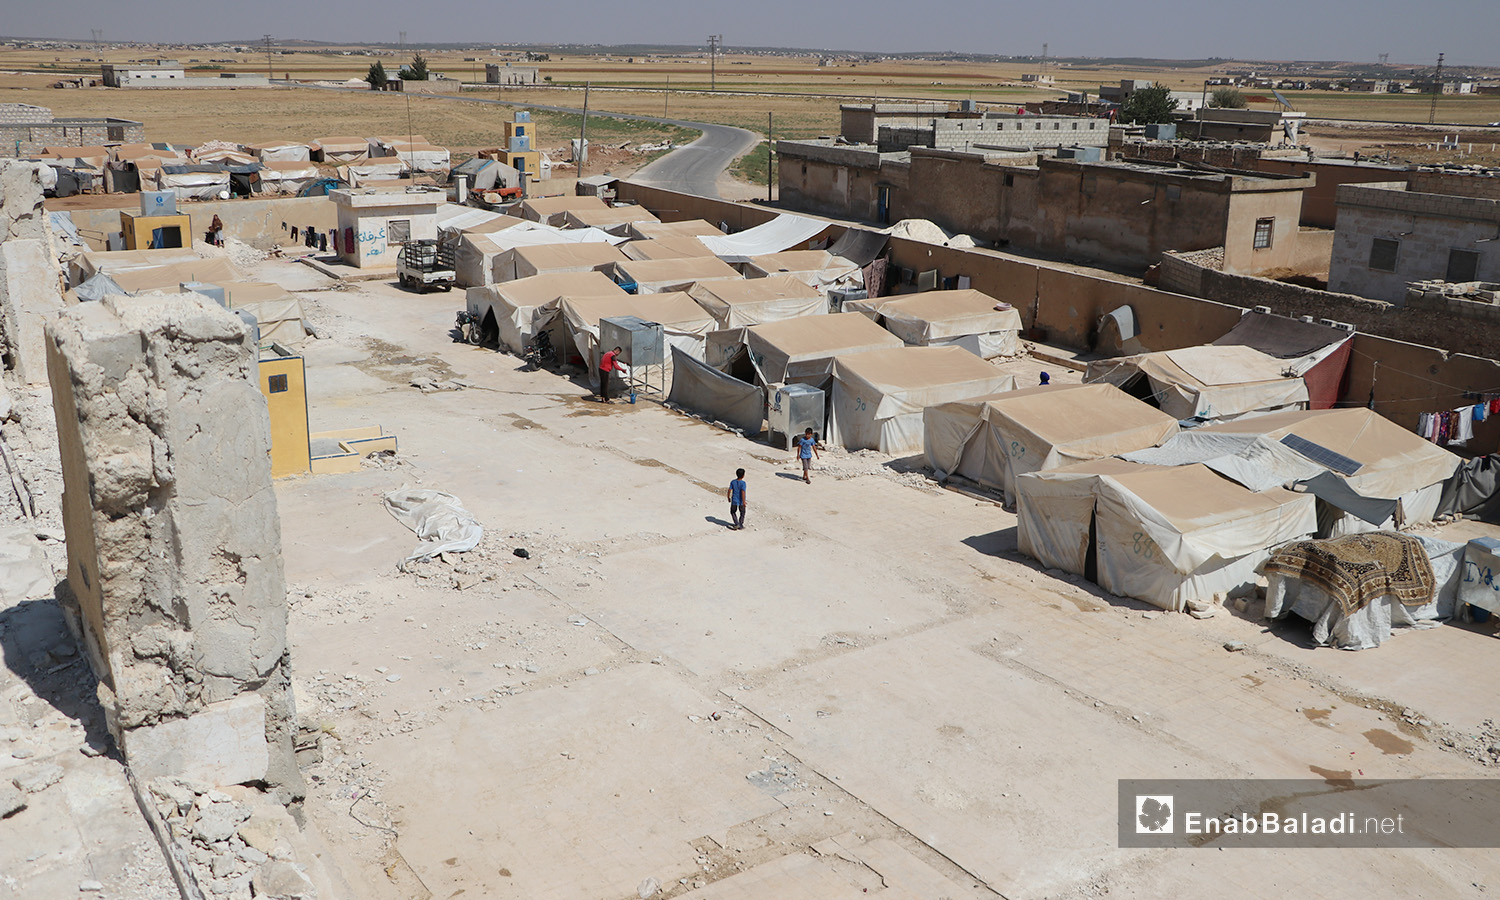 An aerial photo of one side of Qibtan Camp for internally displaced people (IDPs) near Akhtarin town in northern Aleppo countryside – 17 July 2020 (Enab Baladi / Asim Melhem)